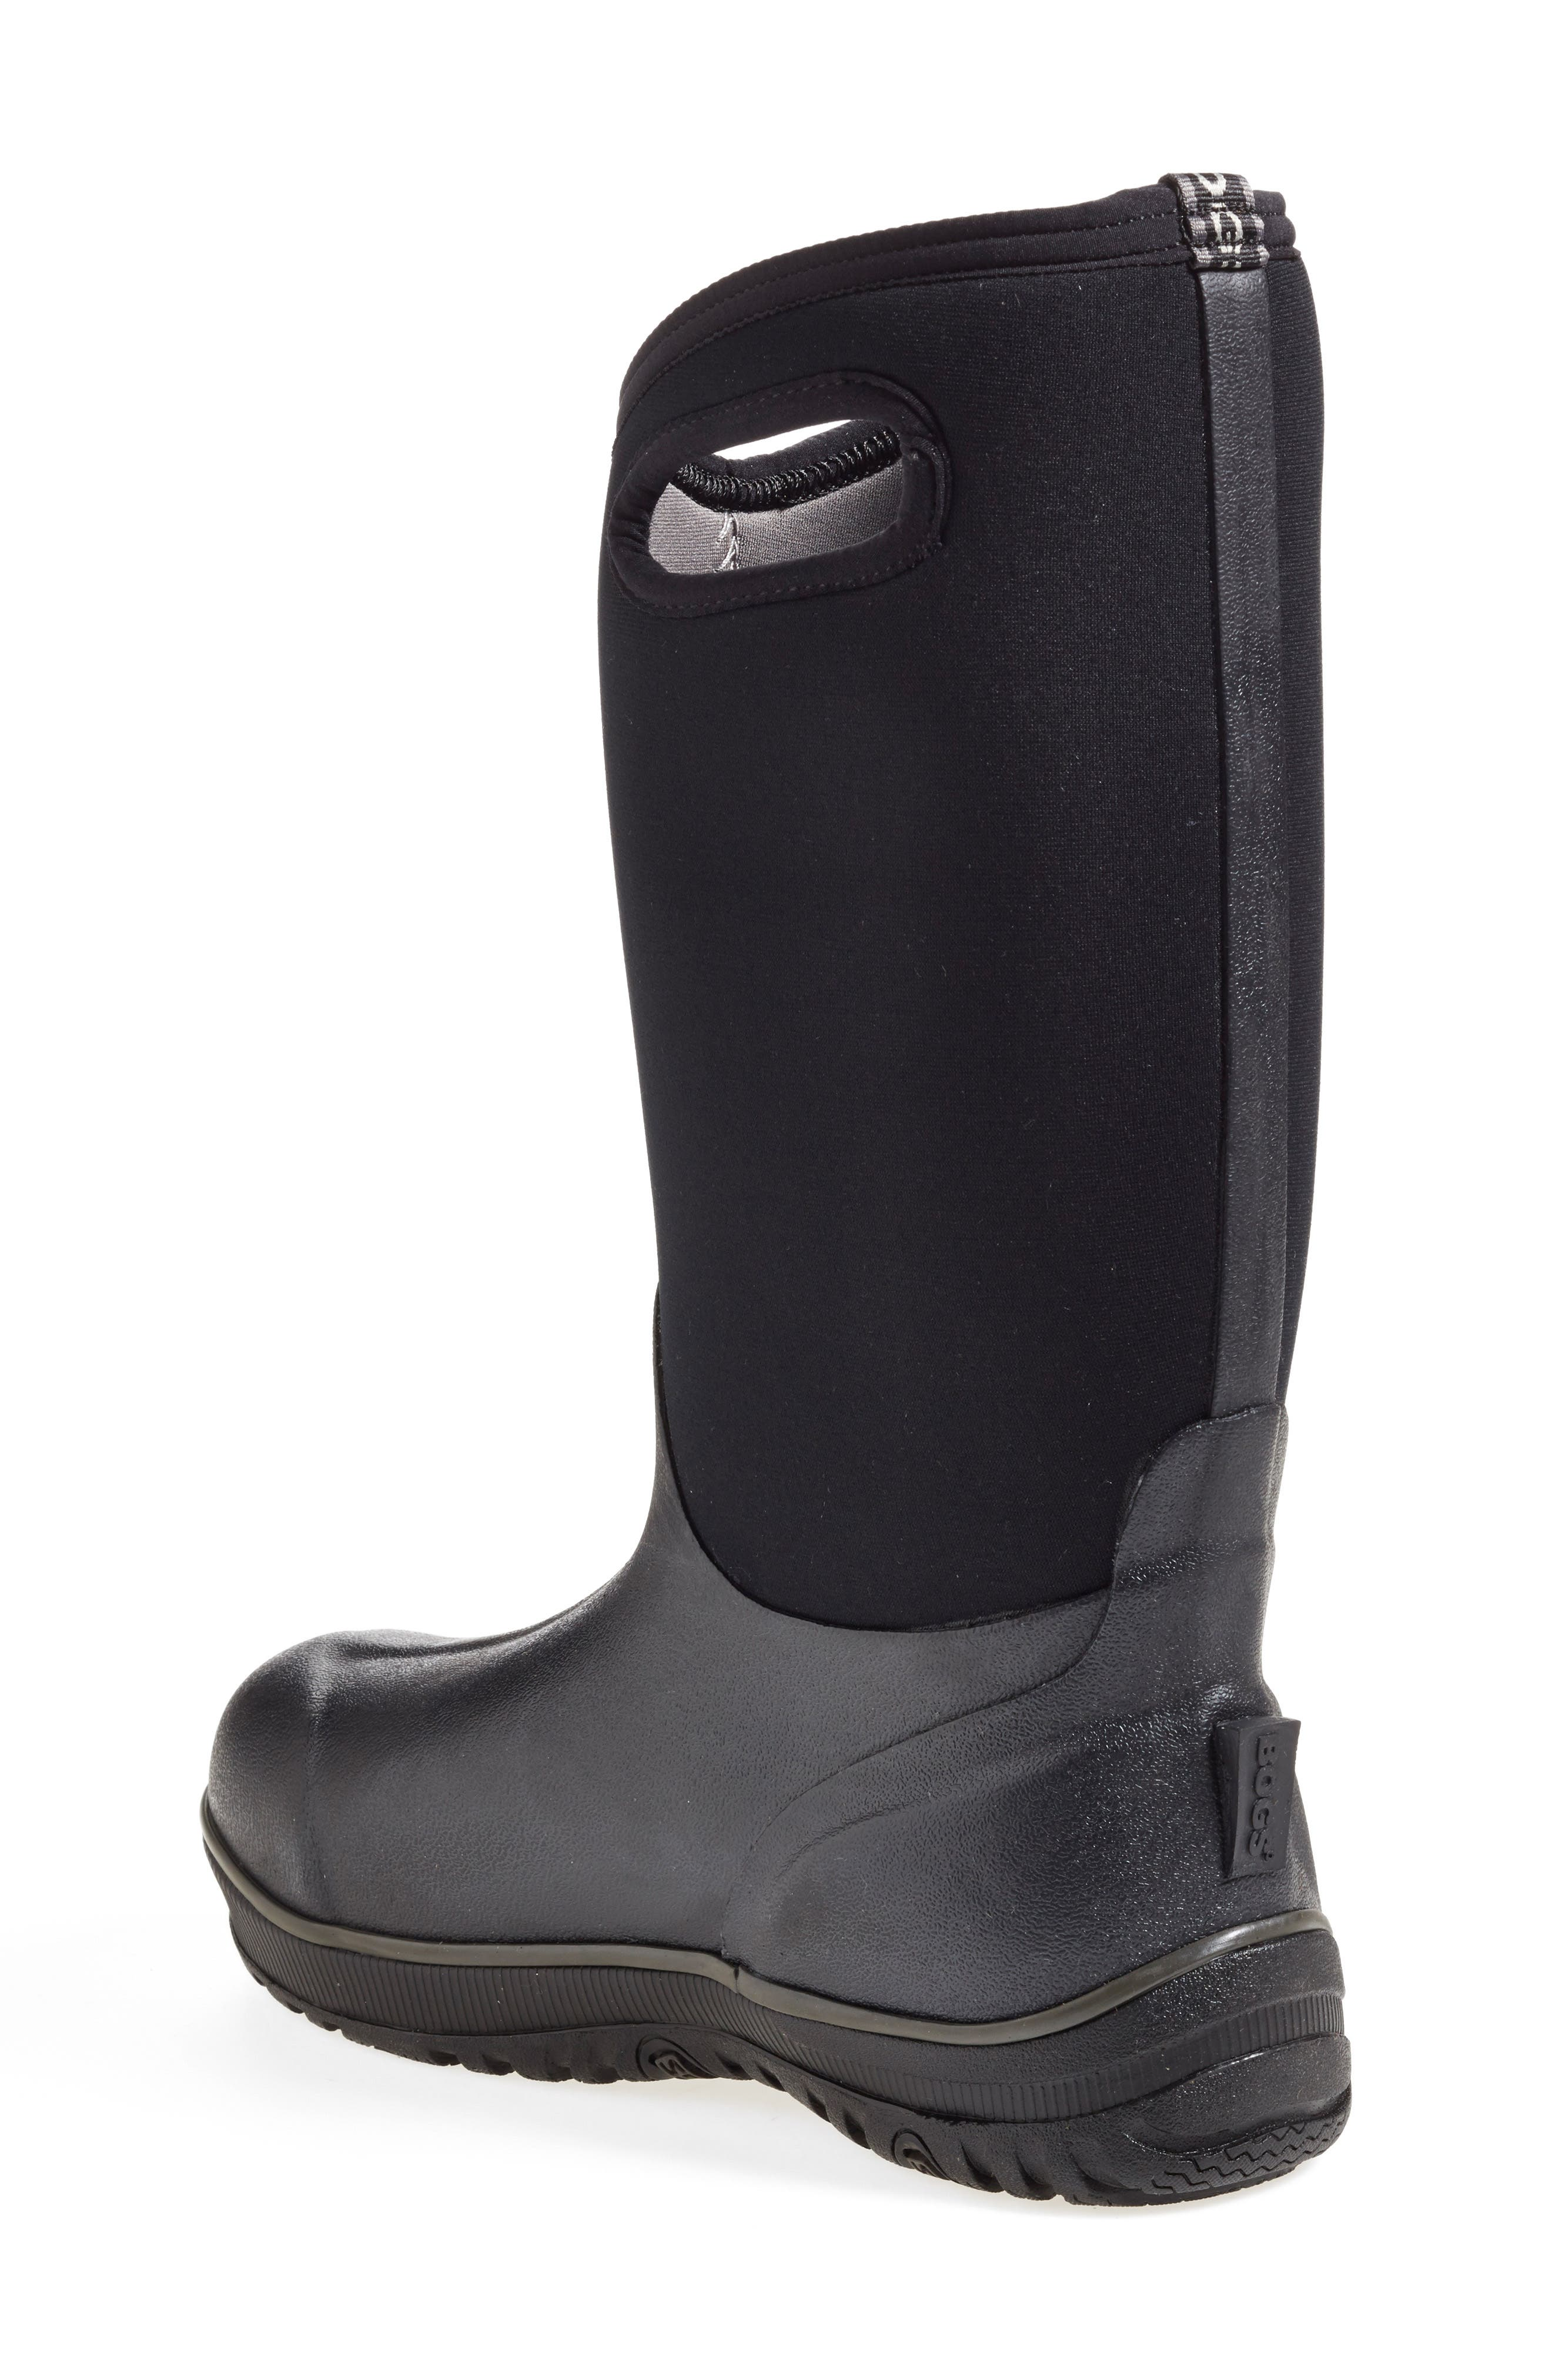 'Classic' Ultra High Waterproof Snow Boot with Cutout Handles,                             Alternate thumbnail 6, color,                             001